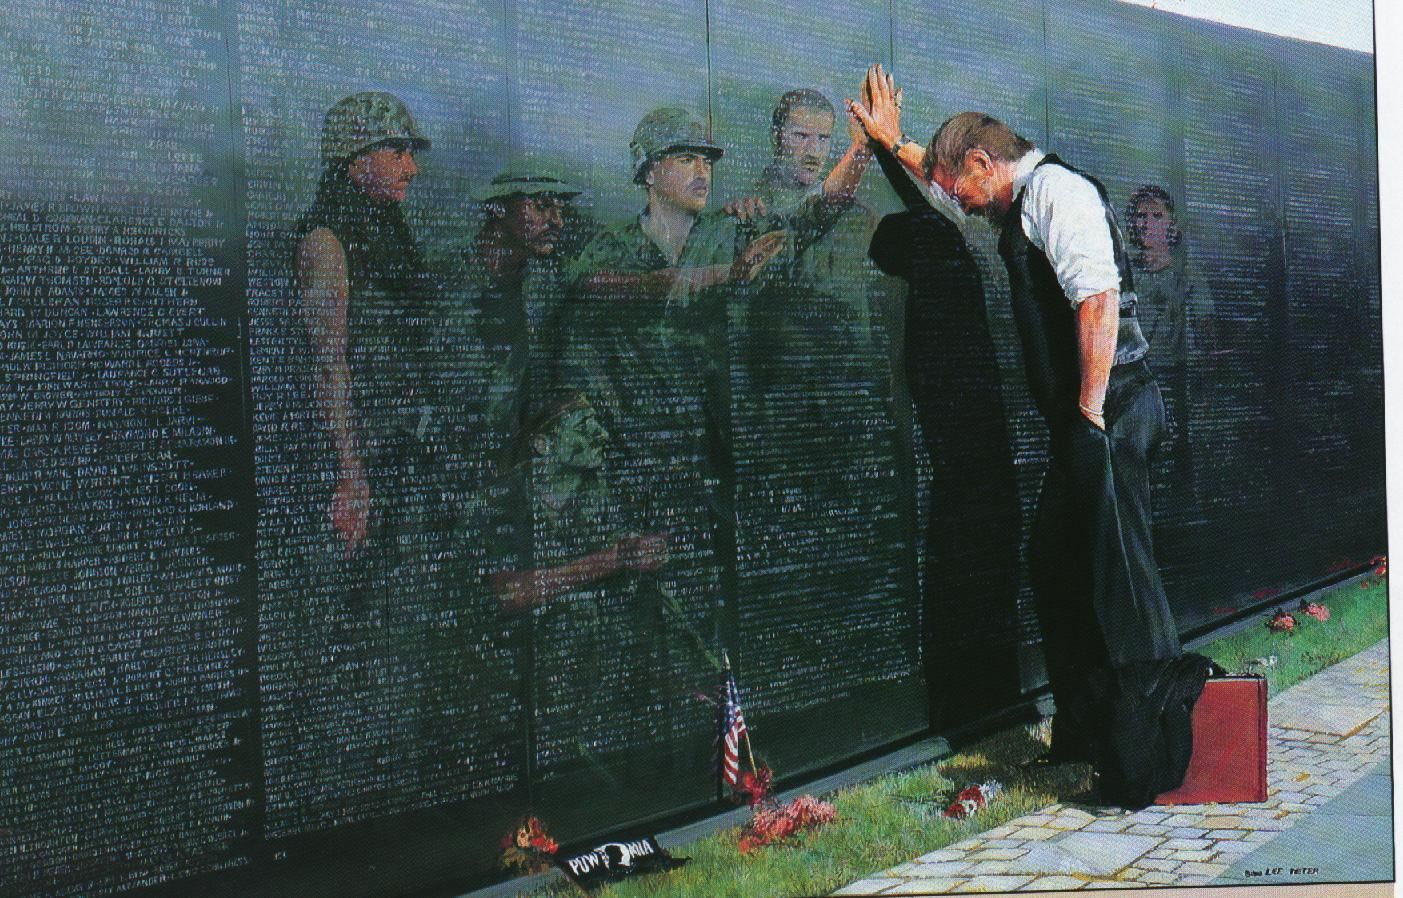 Imgur: The most awesome images on the Internet. | Vietnam memorial, Vietnam  veterans memorial, Vietnam